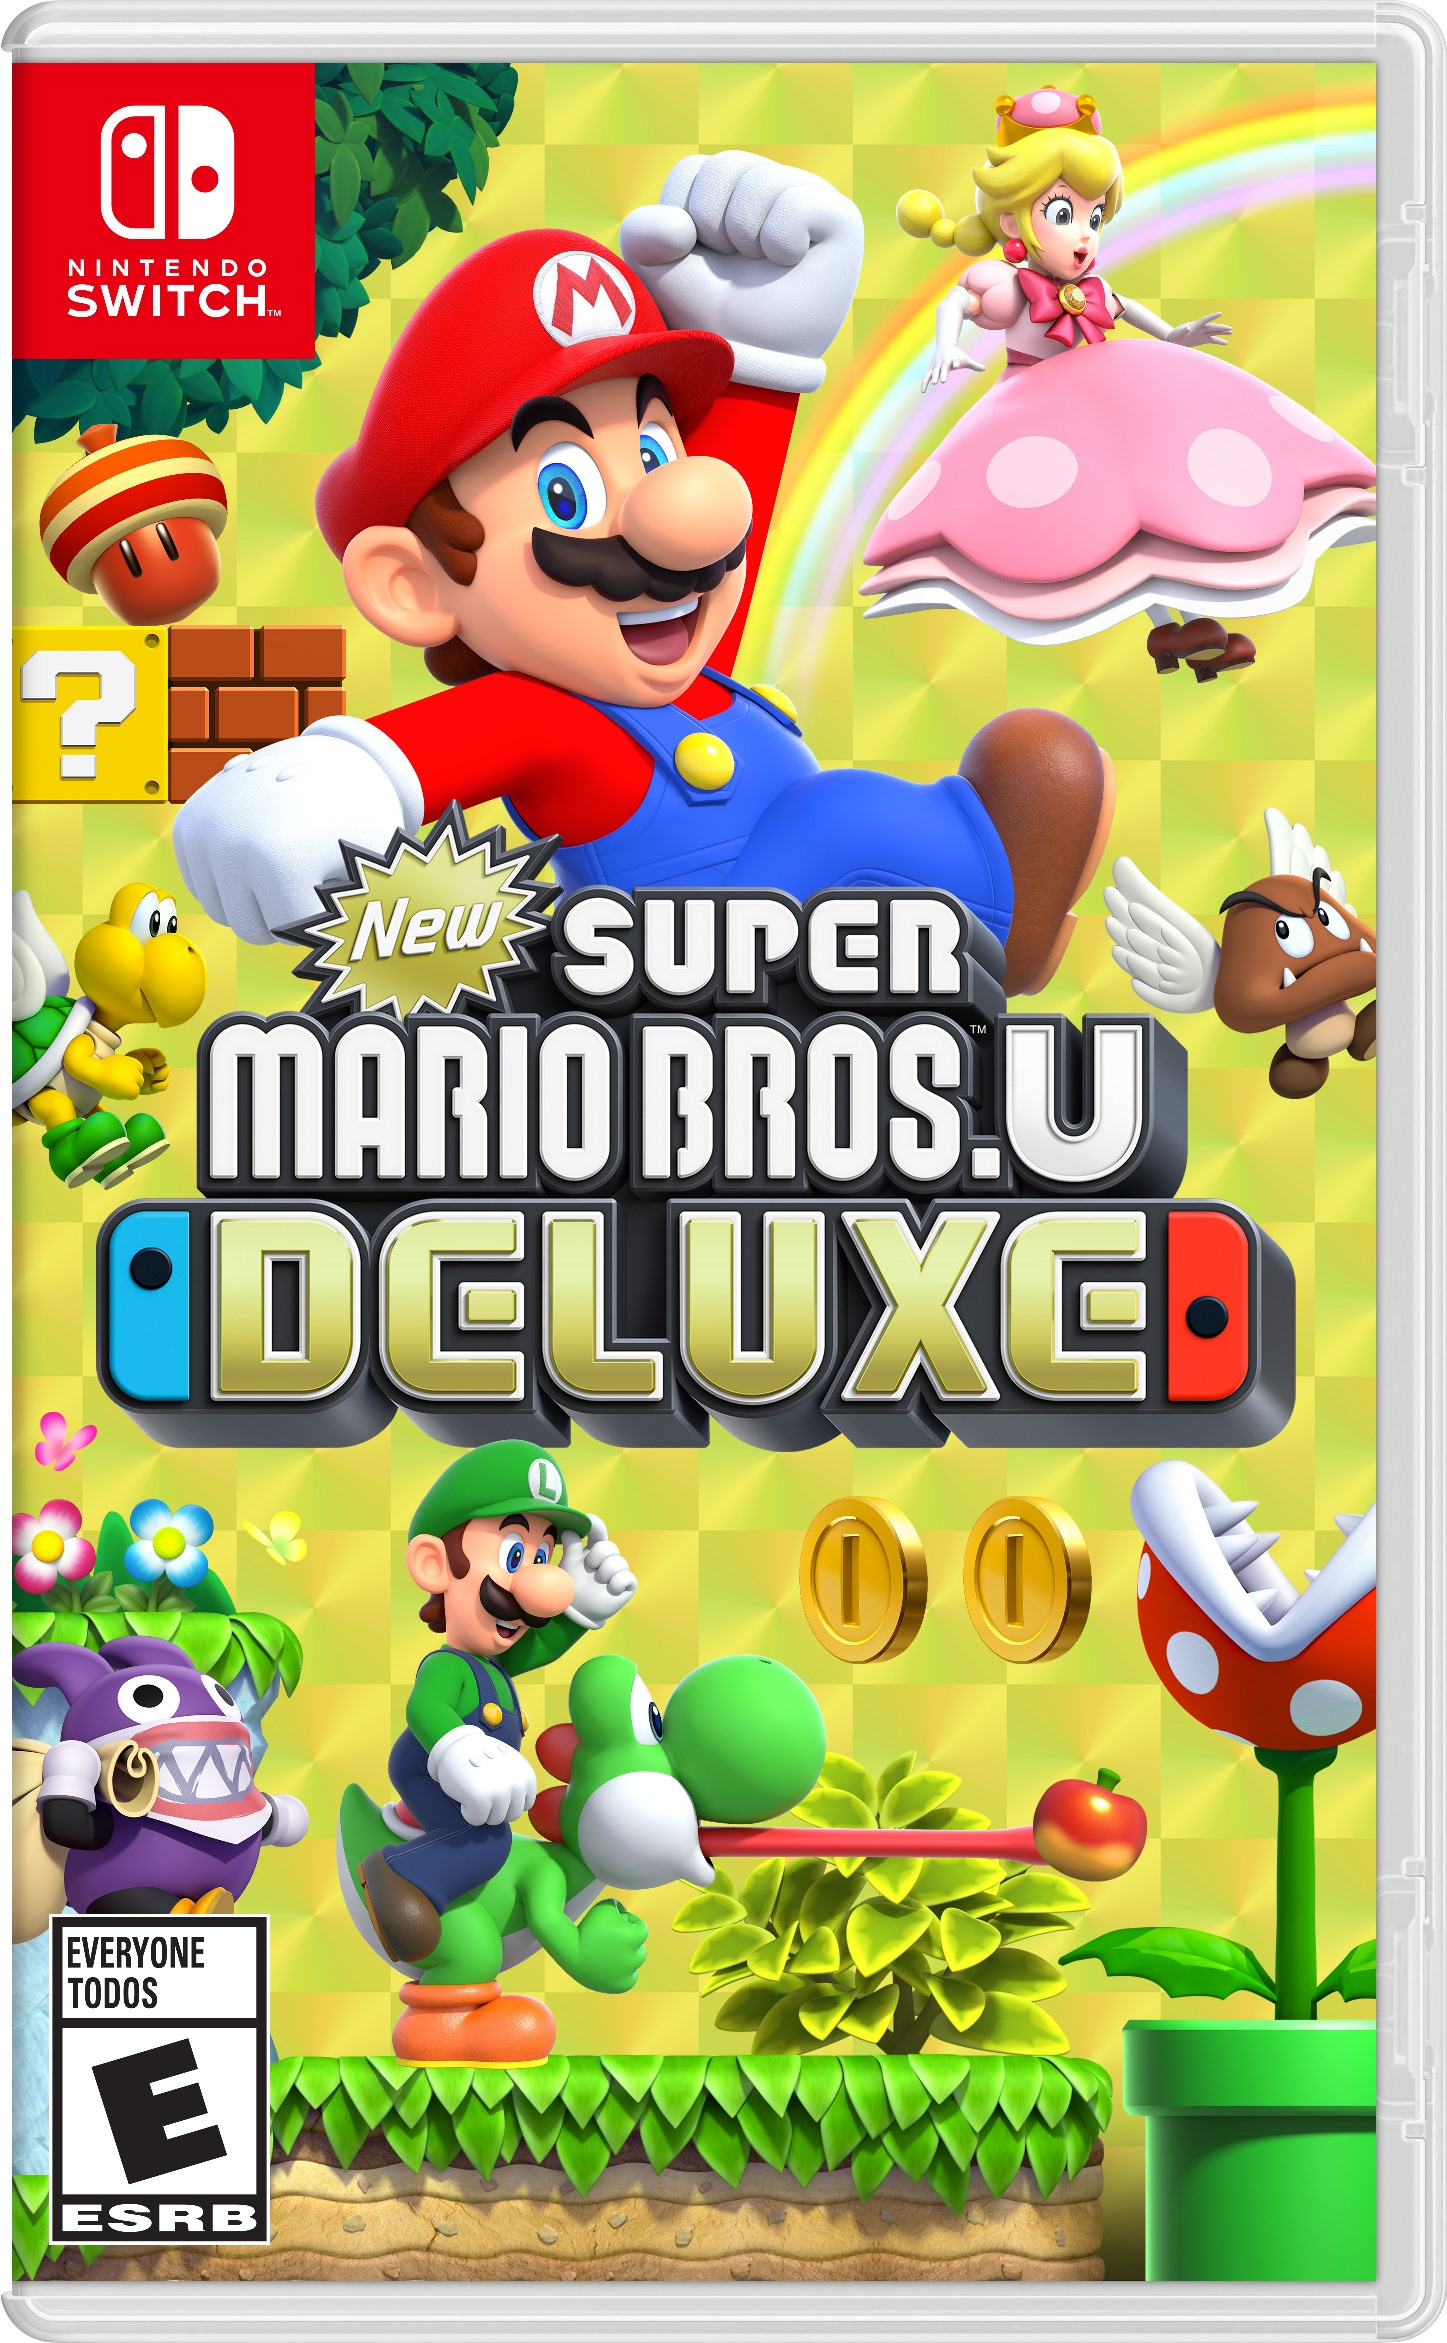 new-super-mario-bros-deluxe-boxart